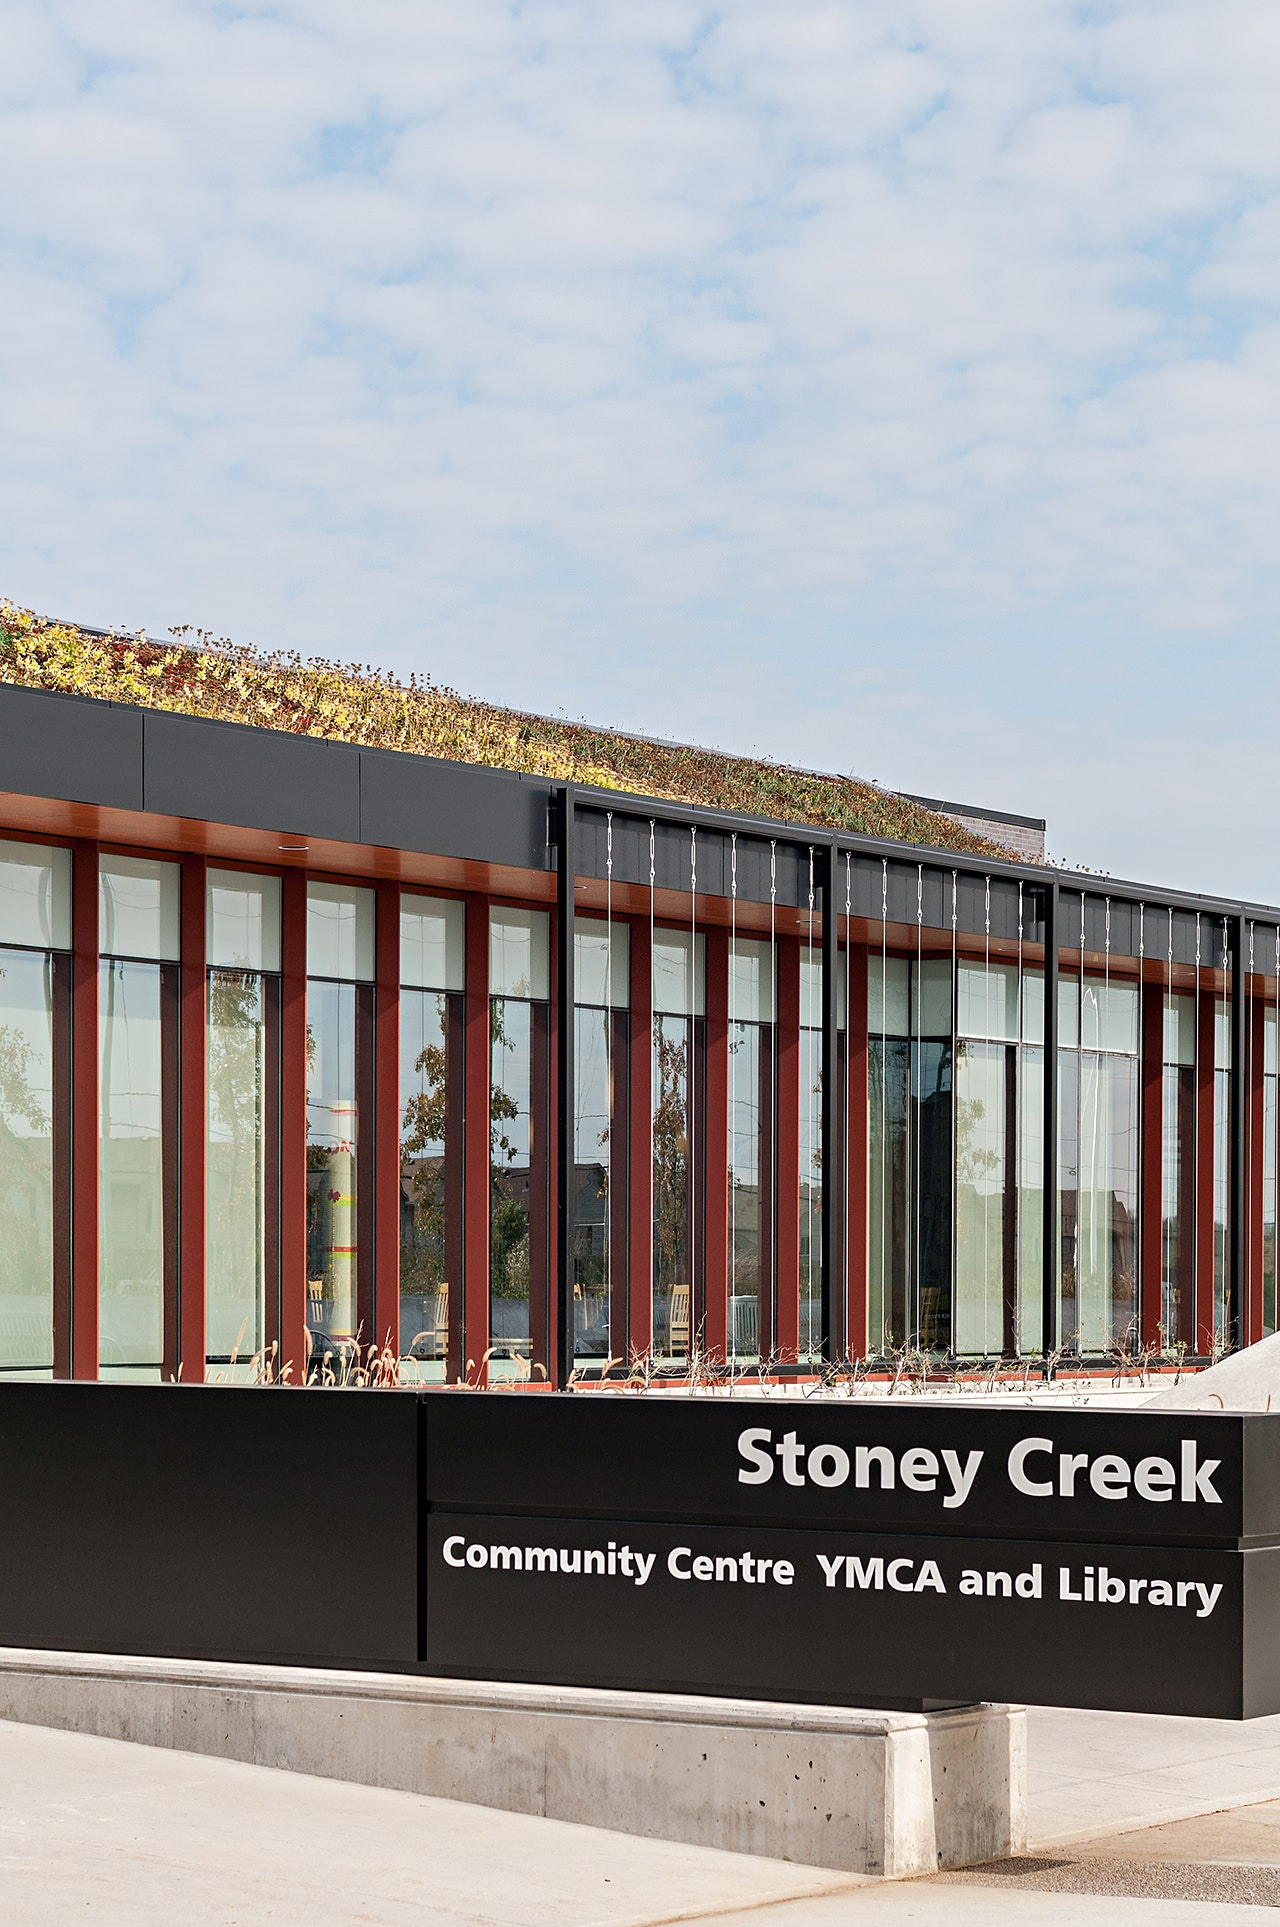 Architecture Photo of Stoney Creek YMCA in London Ontario by photographer, Scott Webb